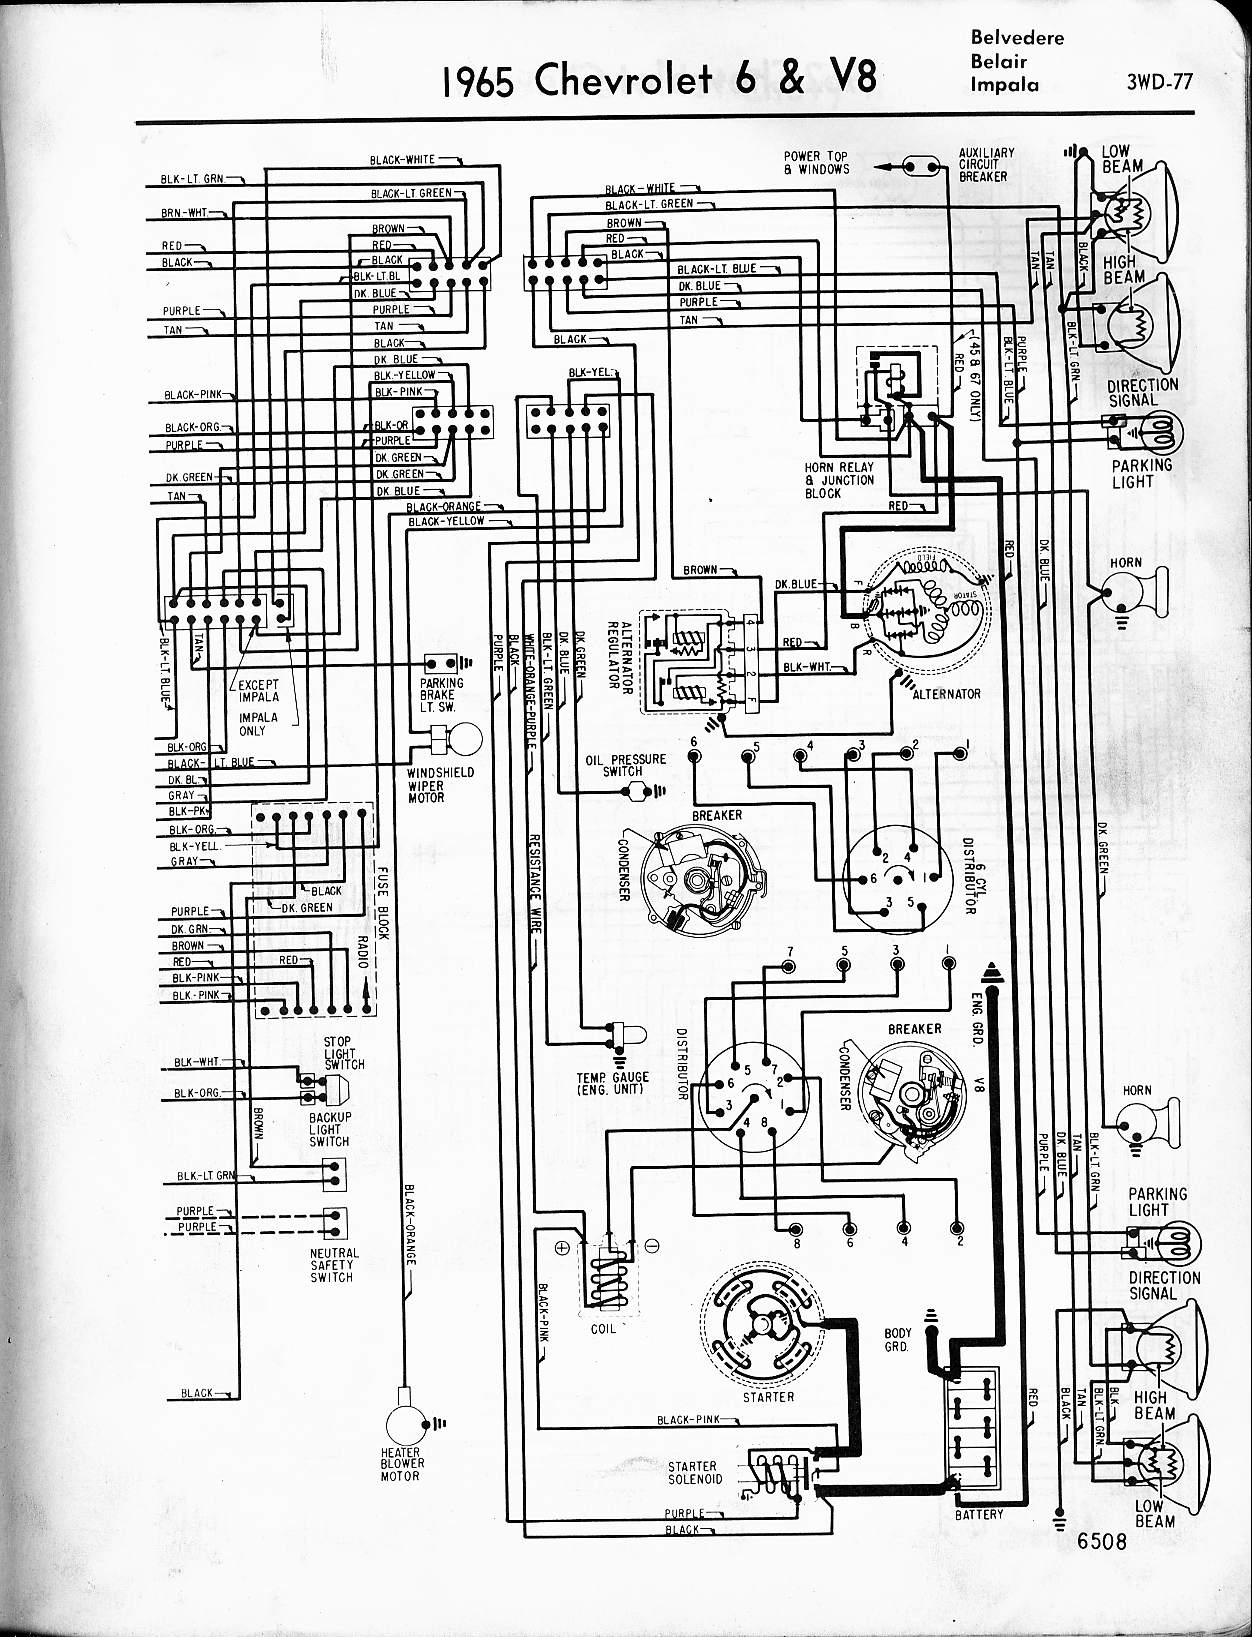 MWireChev65_3WD 077 chevy diagrams 1966 el camino wiring diagram at panicattacktreatment.co